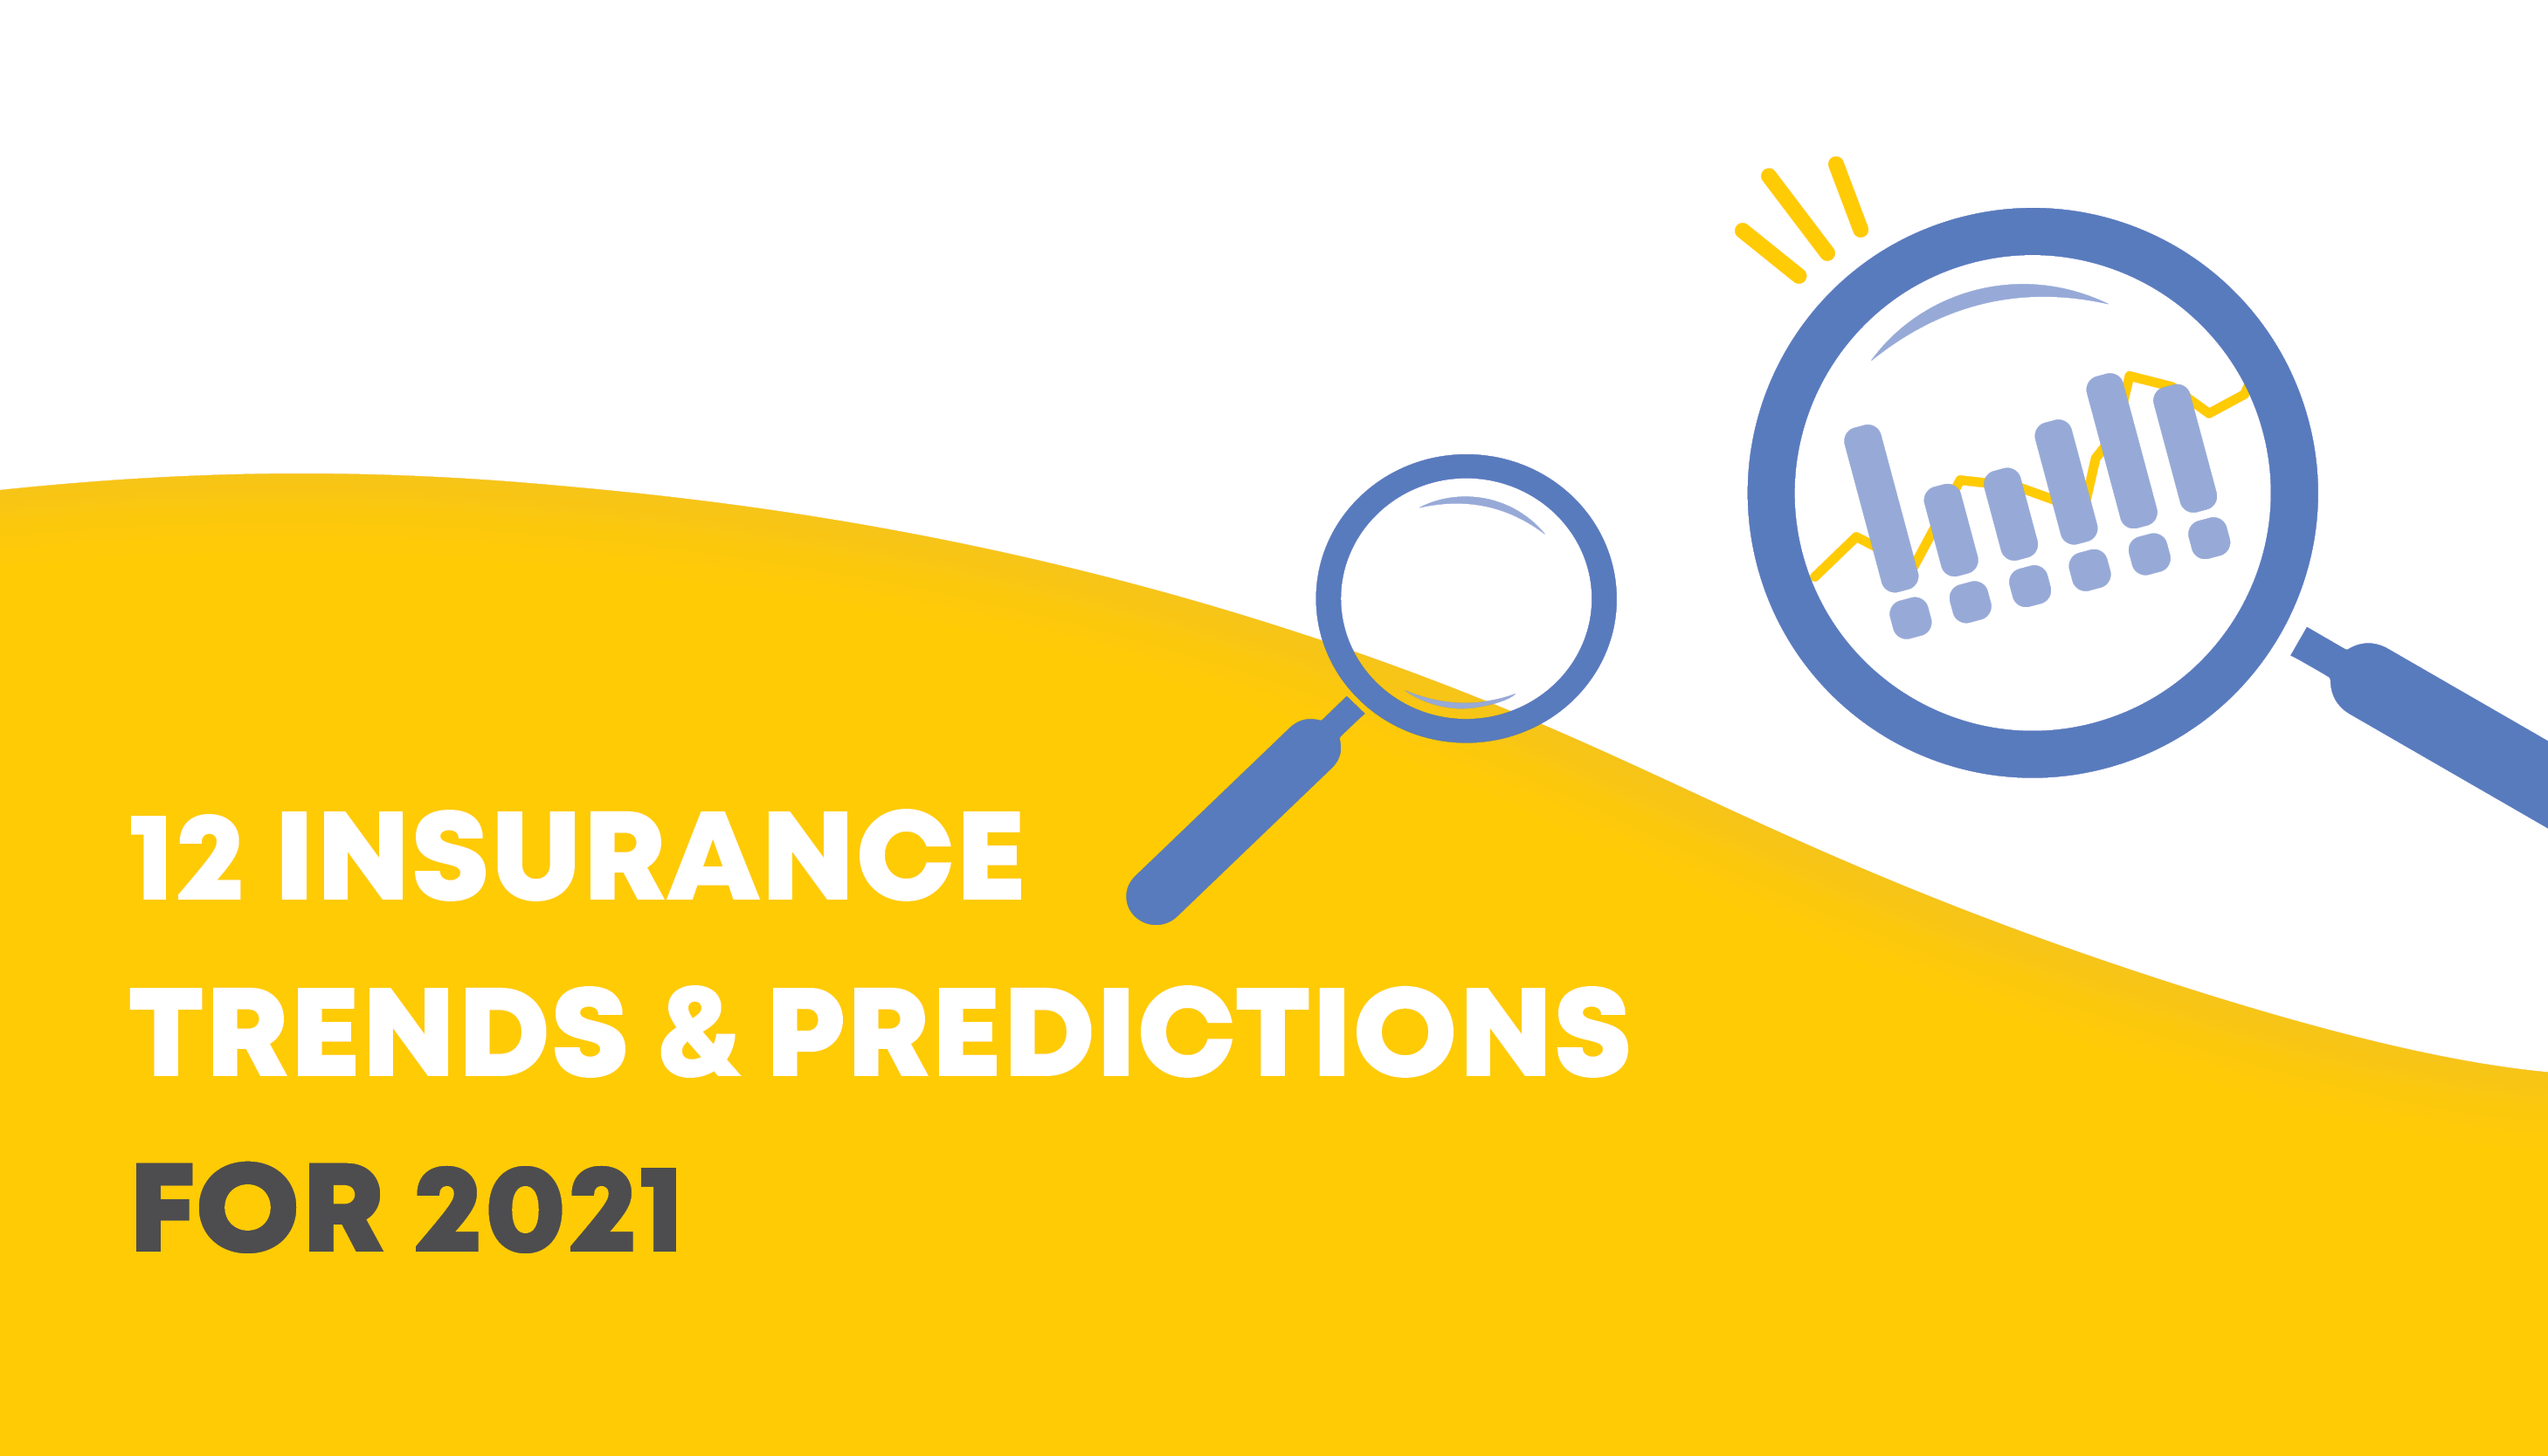 Vector images of magnifying glasses | 12 Insurance Trends and Predictions for 2021 | Benefits by Design